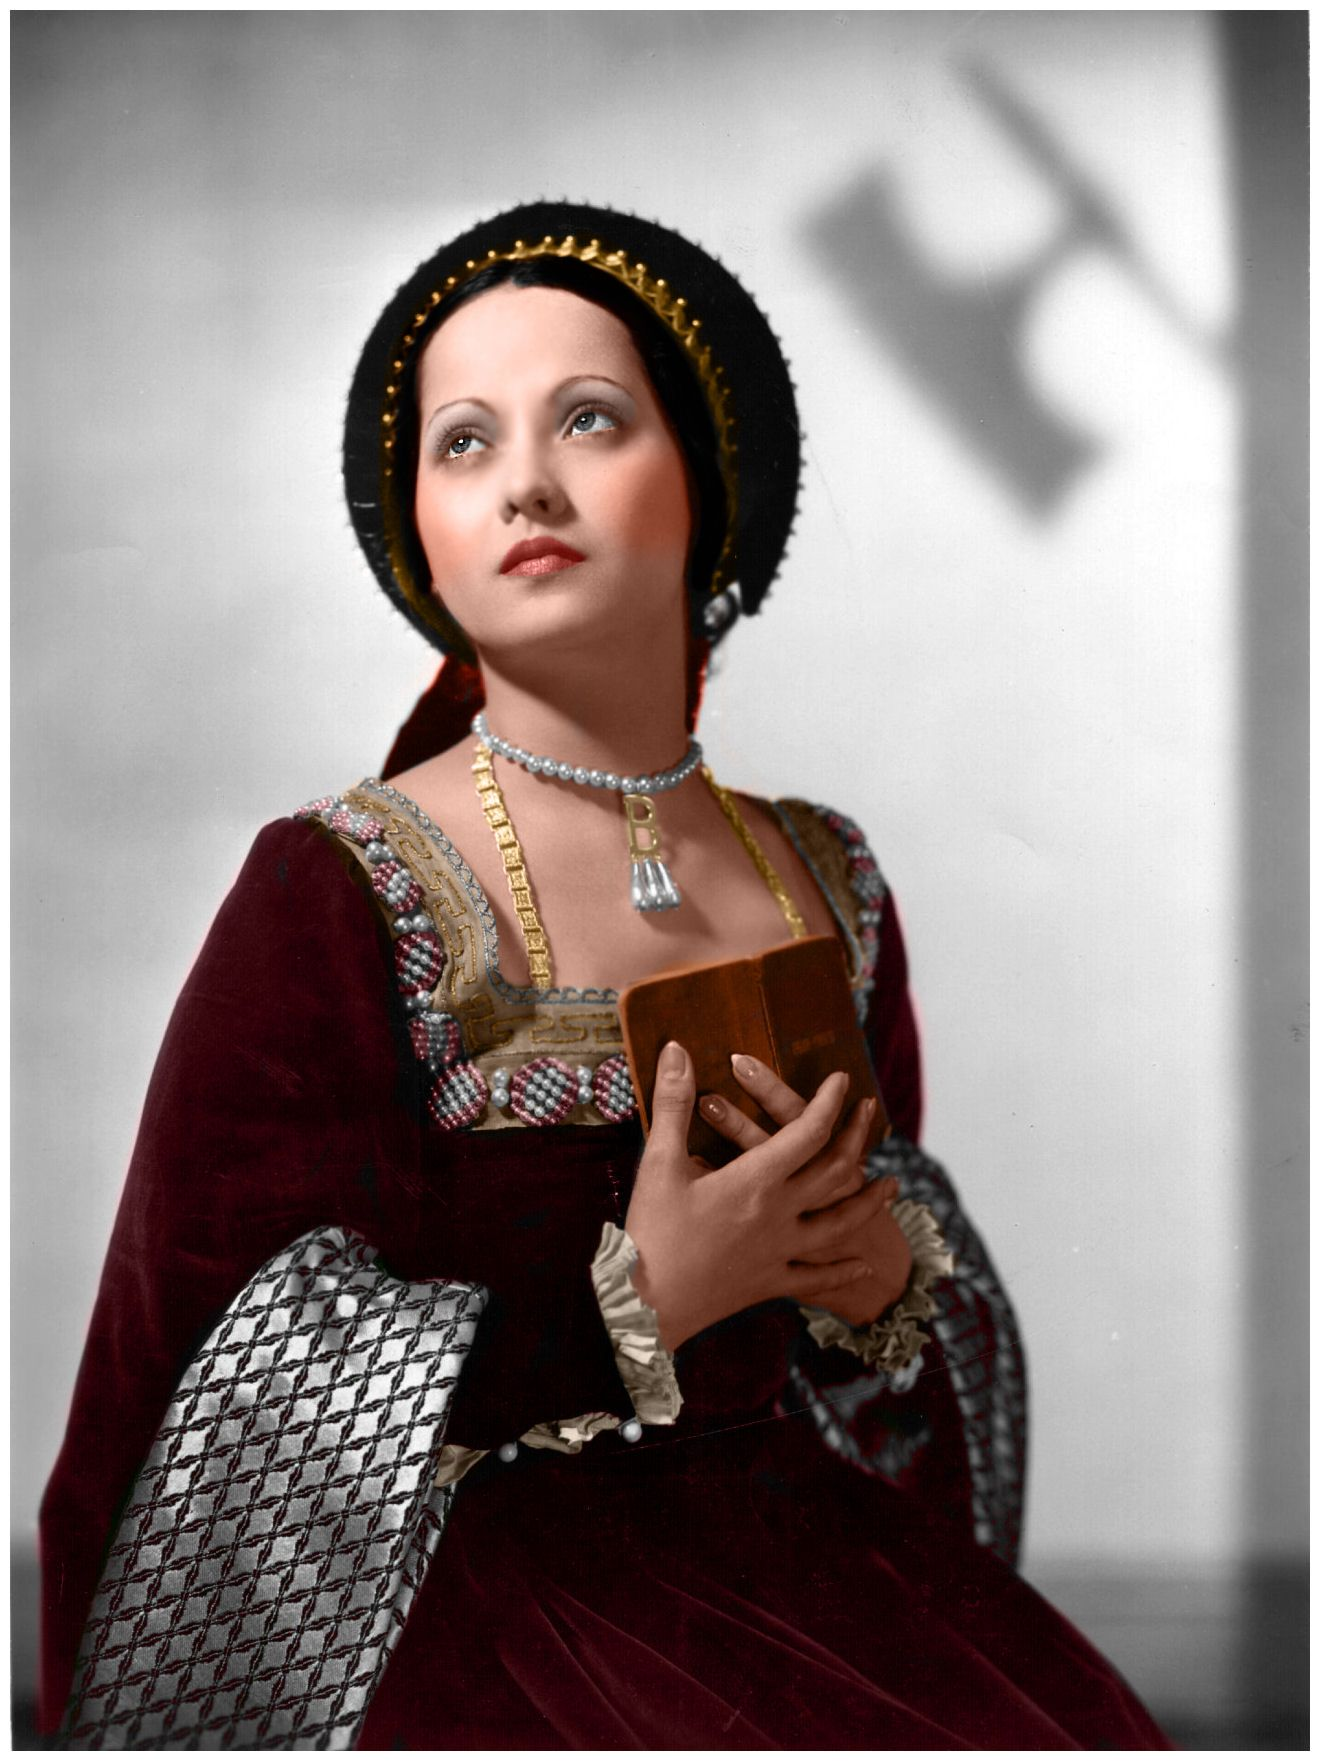 merle oberon actress